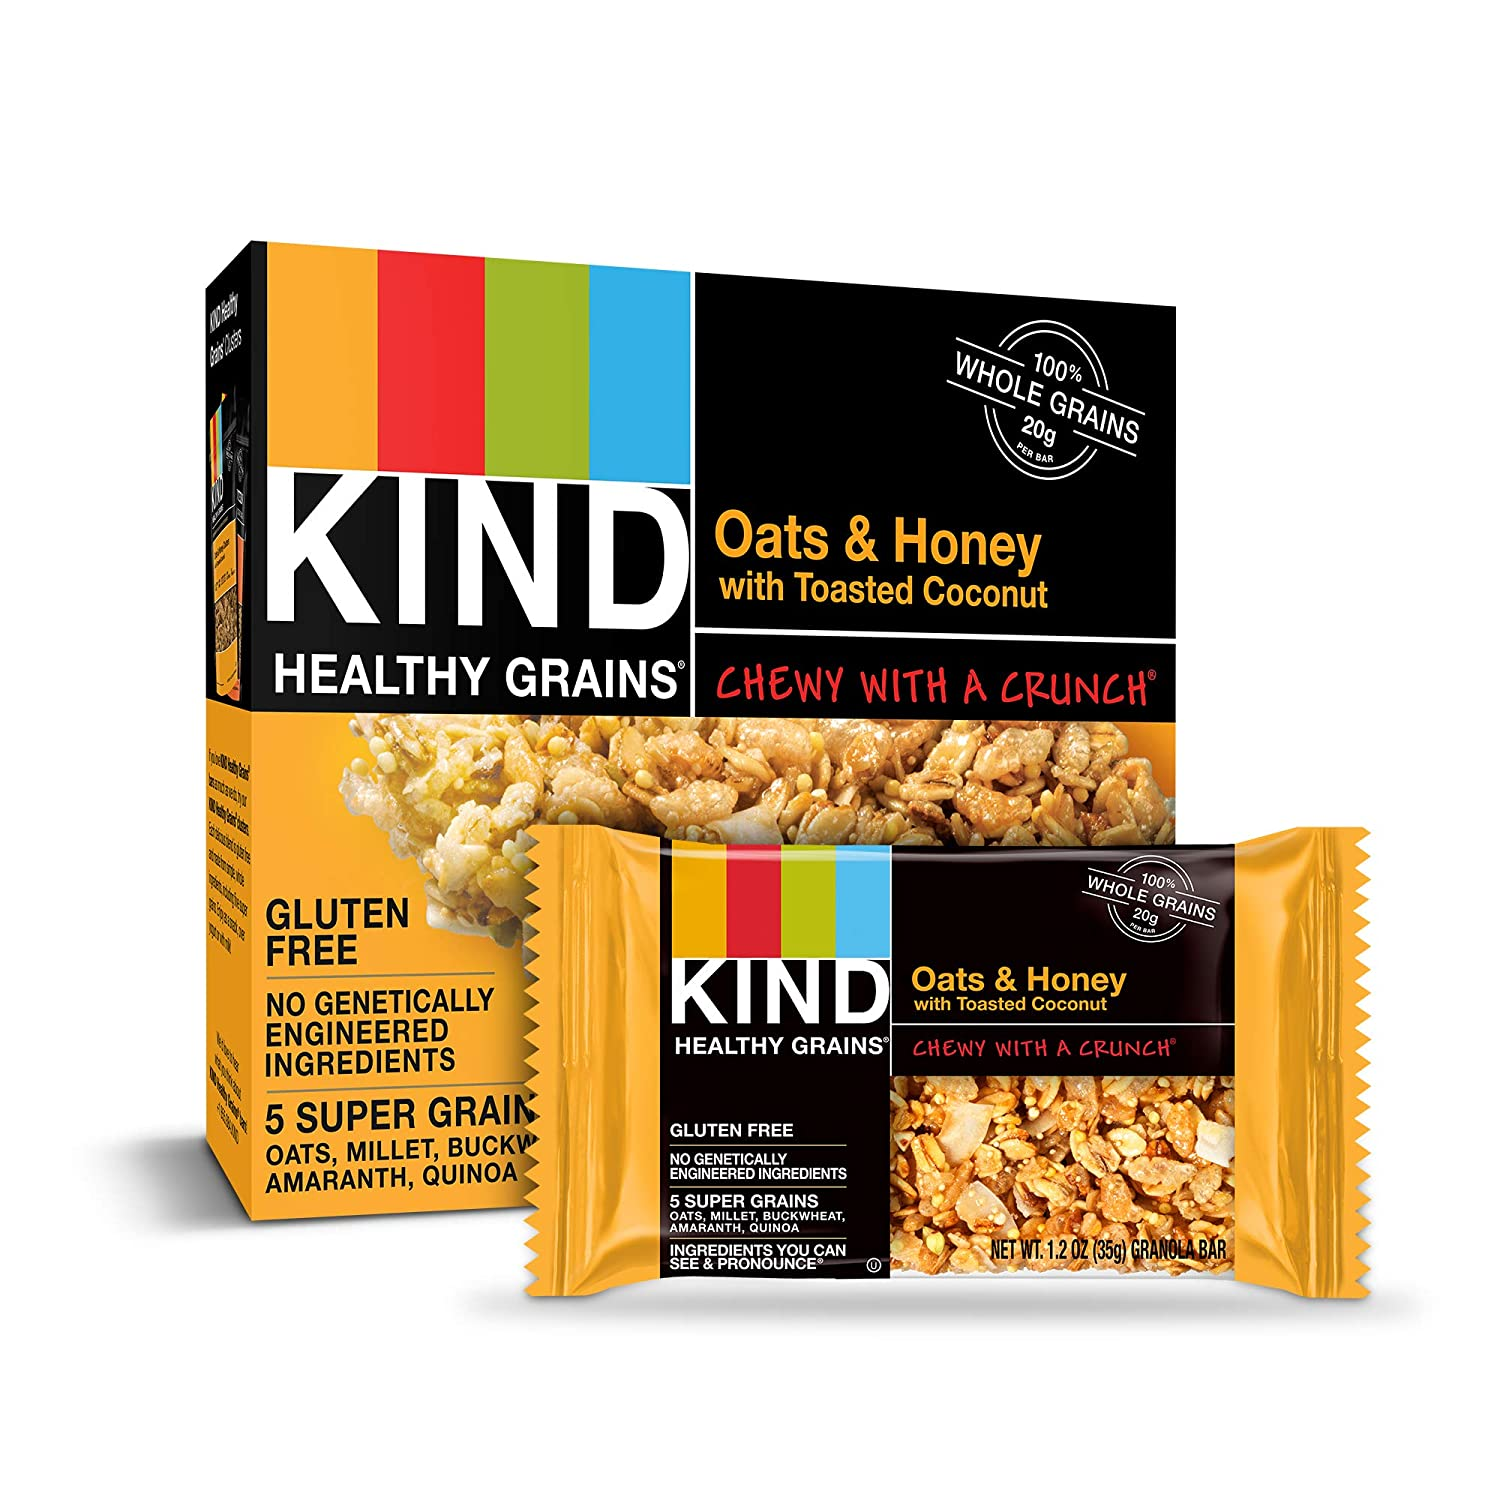 KIND Healthy Grains Bars, Oats & Honey with Toasted Coconut, Gluten Free, 1.2 Ounce, 40 Count